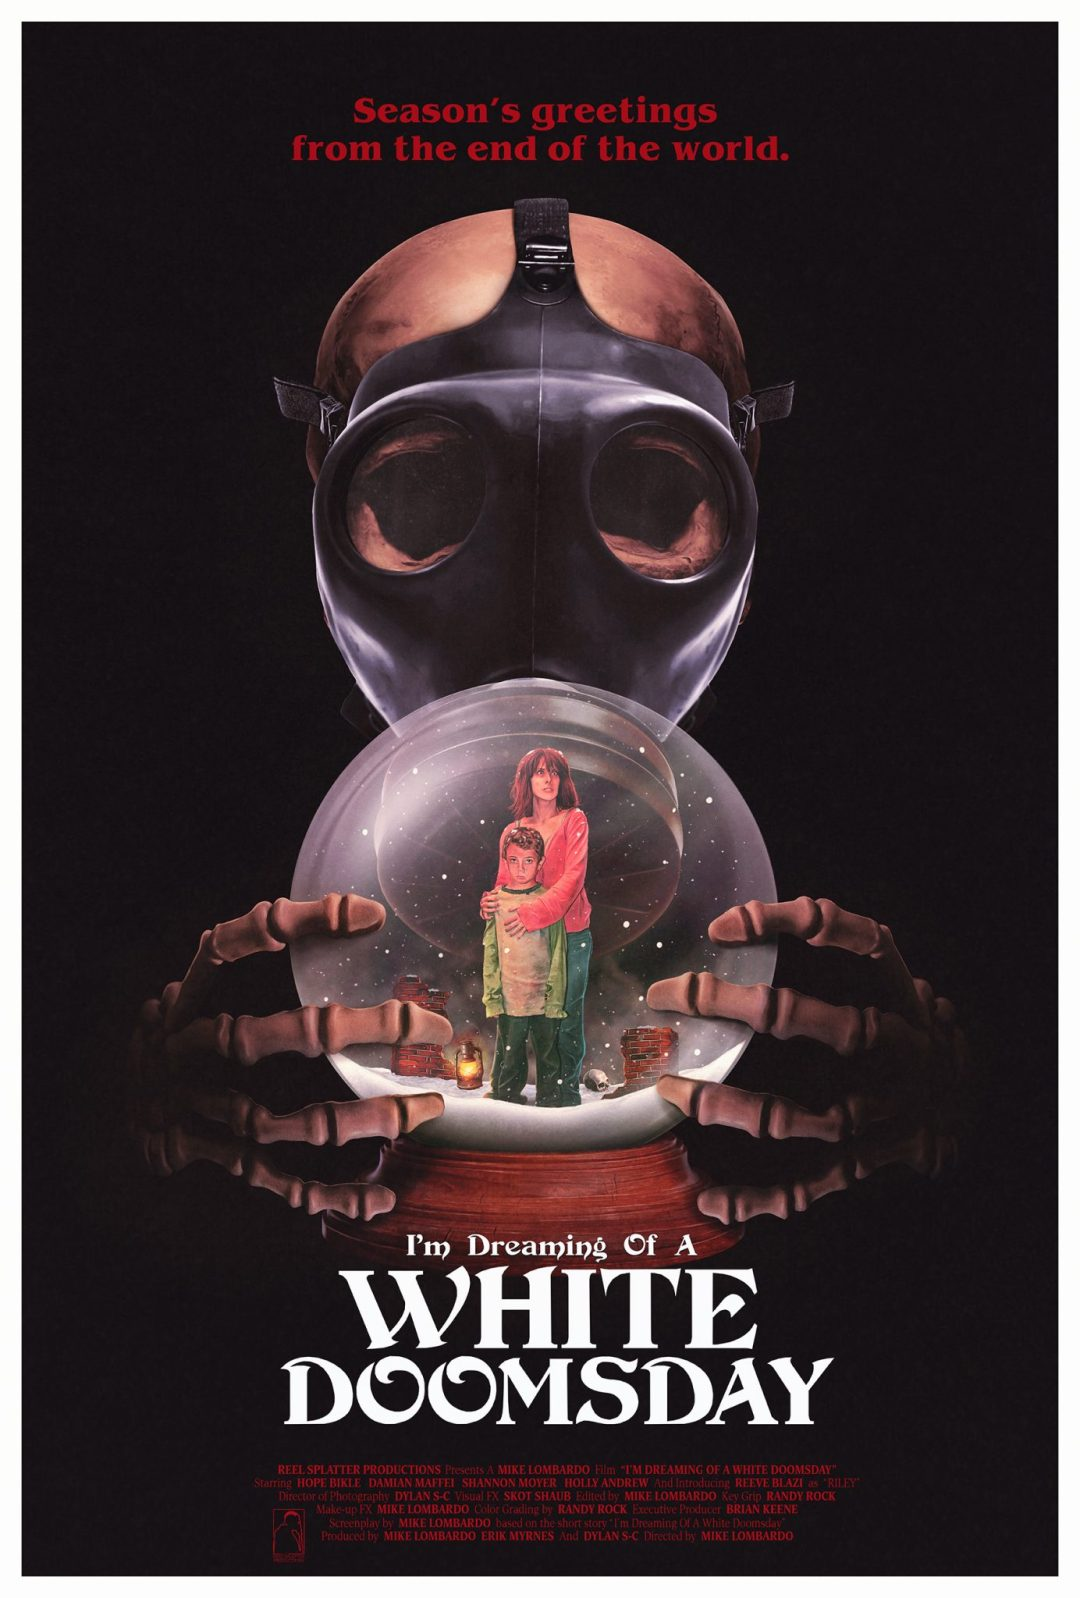 Reel Splatter Productions Presents 'I'm Dreaming of a White Doomsday'